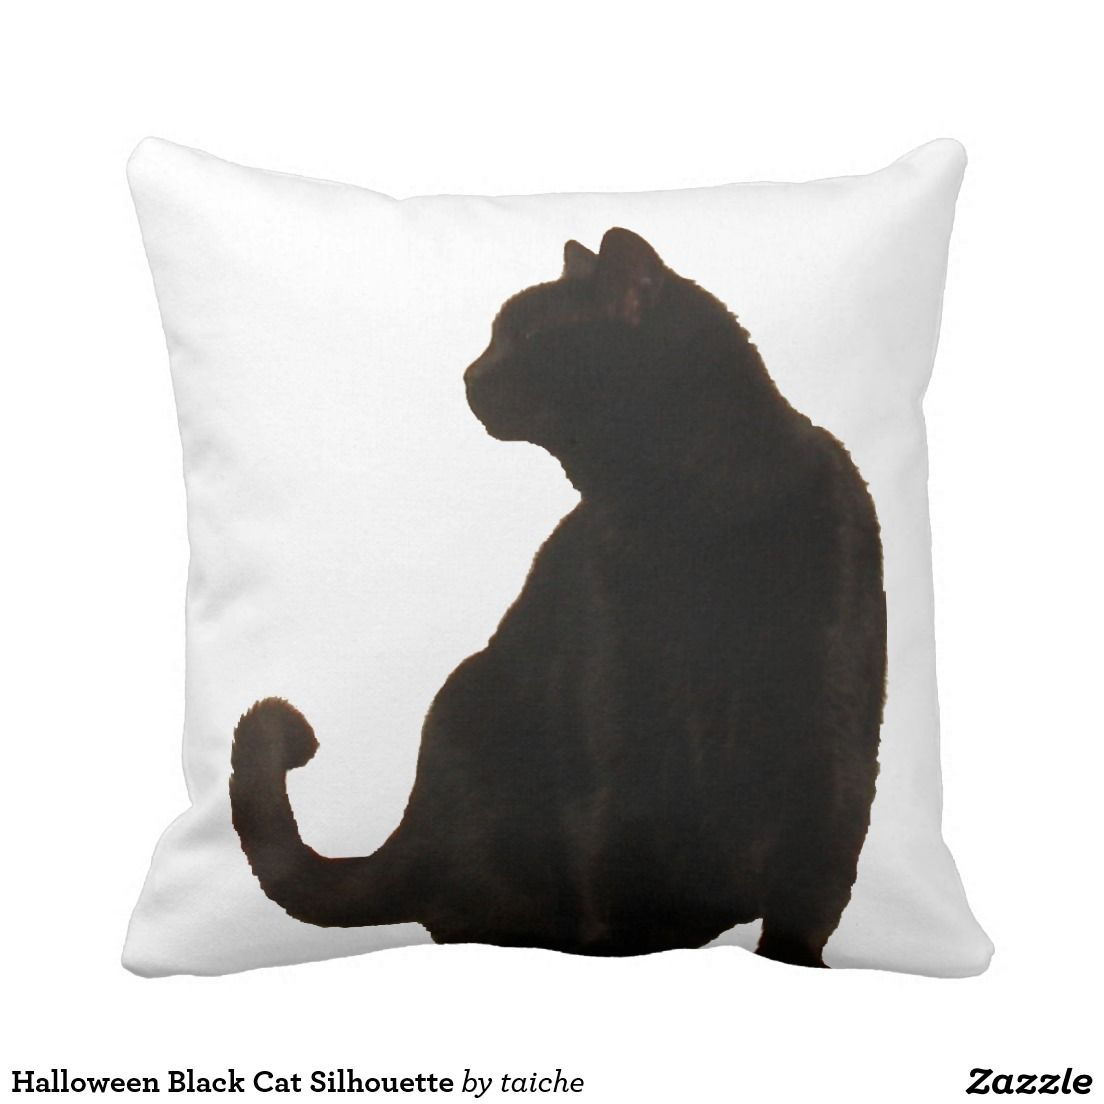 halloween black cat silhouette pillow - Black Cat Silhouette Halloween